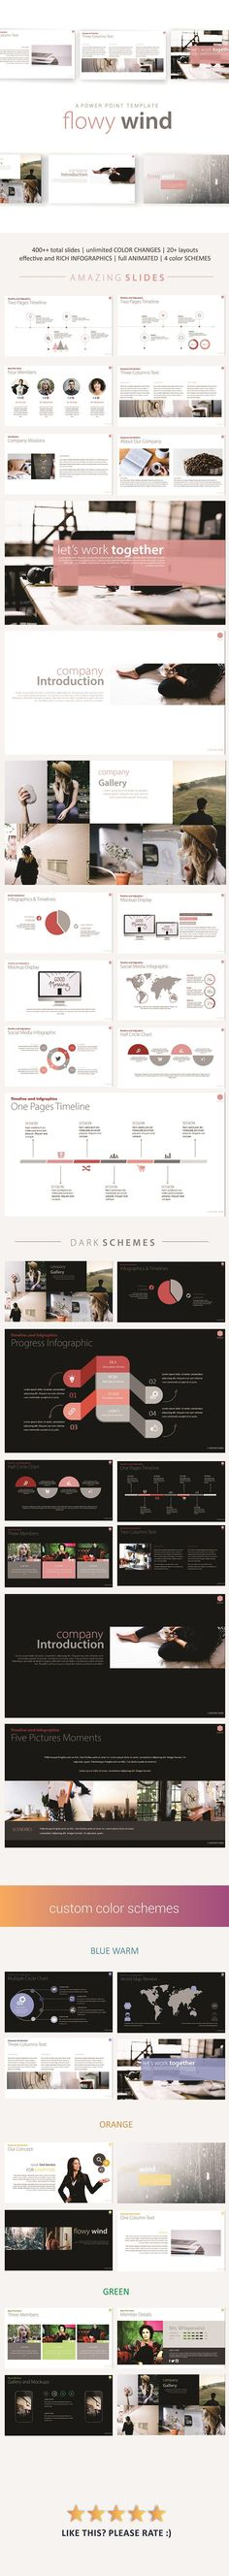 Flowy Wind PowerPoint Template. Download here: http://graphicriver.net/item/flowy-wind-powerpoint-template/16108017?ref=ksioks (scheduled via http://www.tailwindapp.com?utm_source=pinterest&utm_medium=twpin&utm_content=post104579223&utm_campaign=scheduler_attribution)